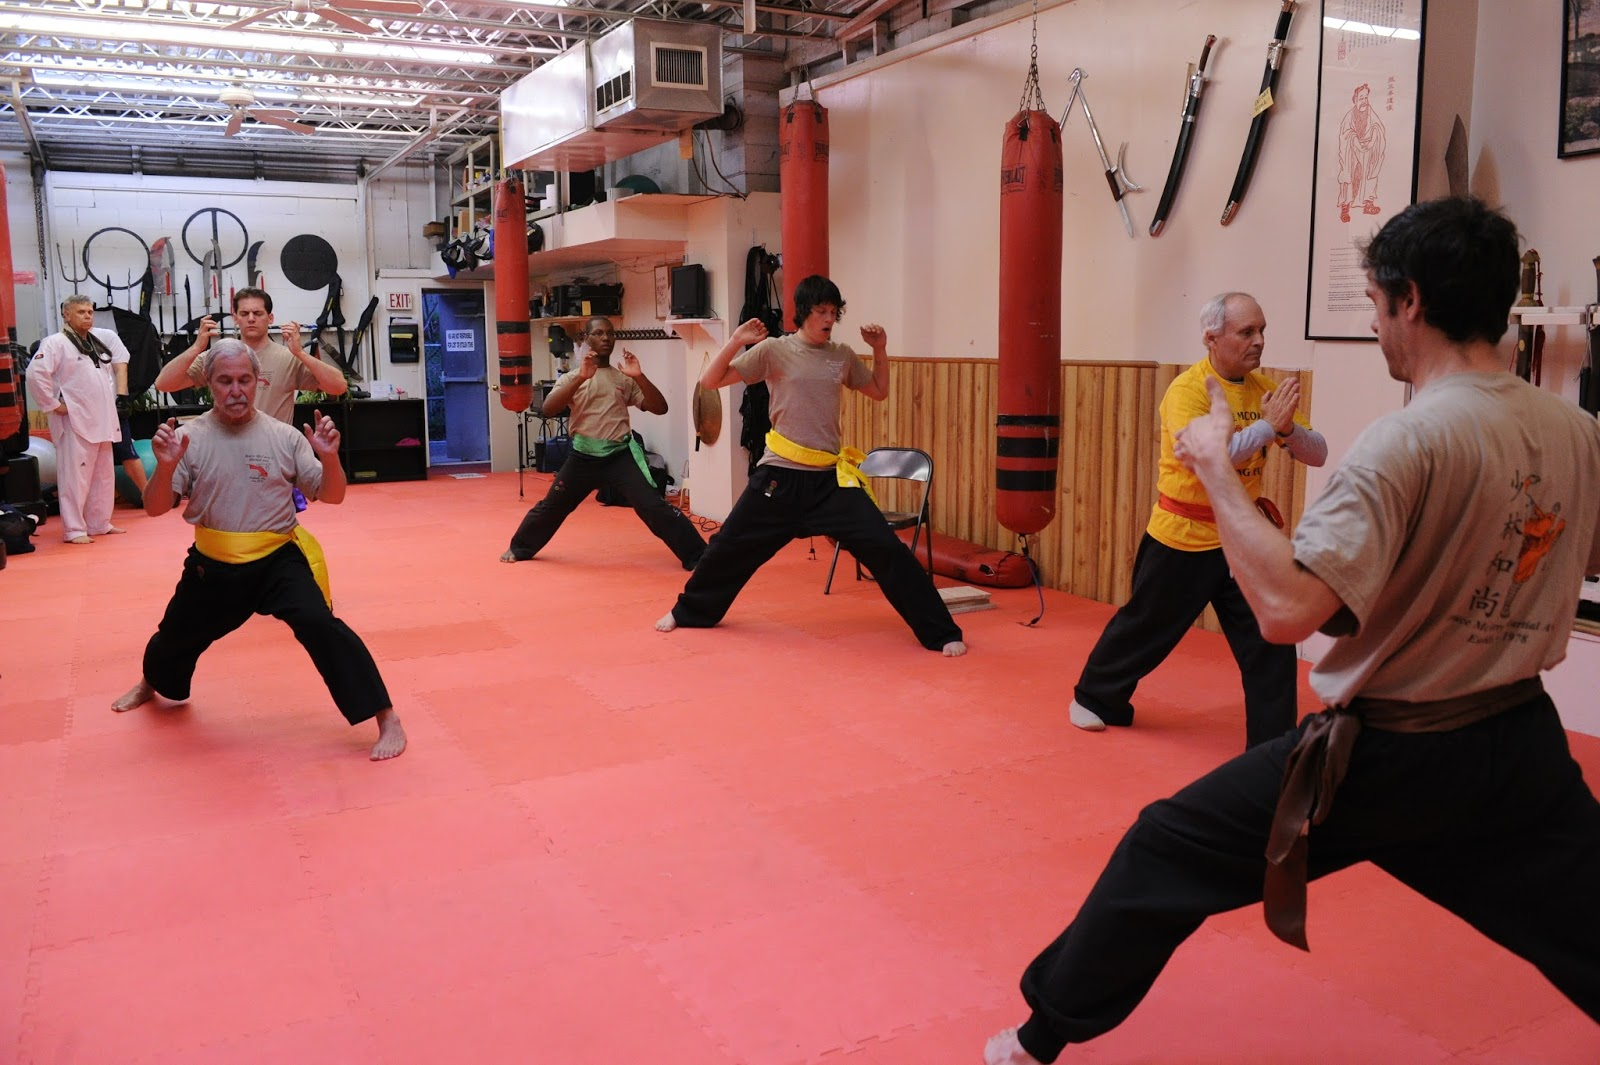 Am I too old to start learning martial arts? - Quora